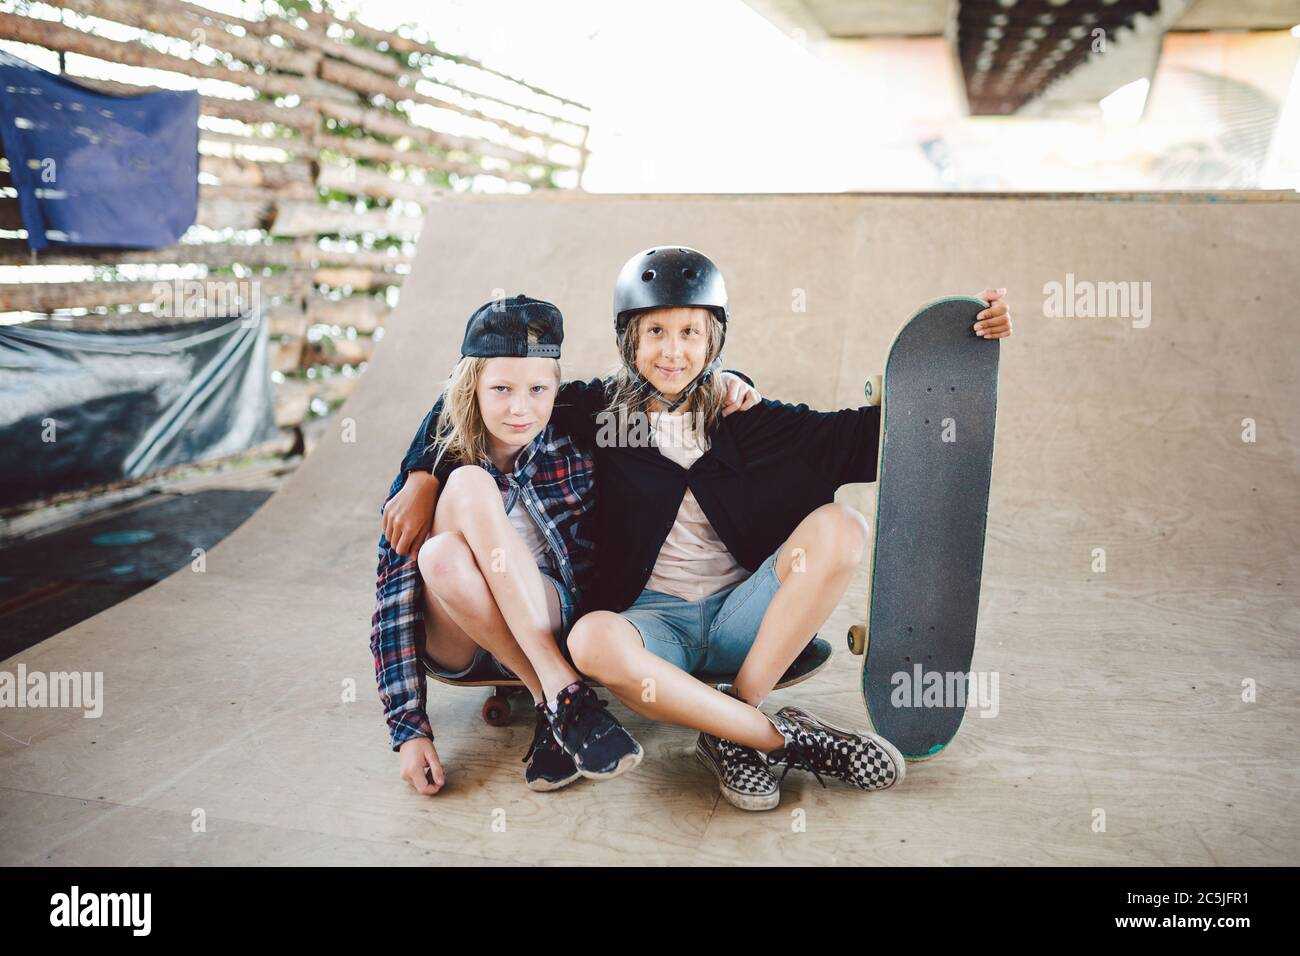 Group of children friends enjoying day at skate park. Youth, togetherness and friendship concept. Group of kids skateboarders. Urban little ones Stock Photo